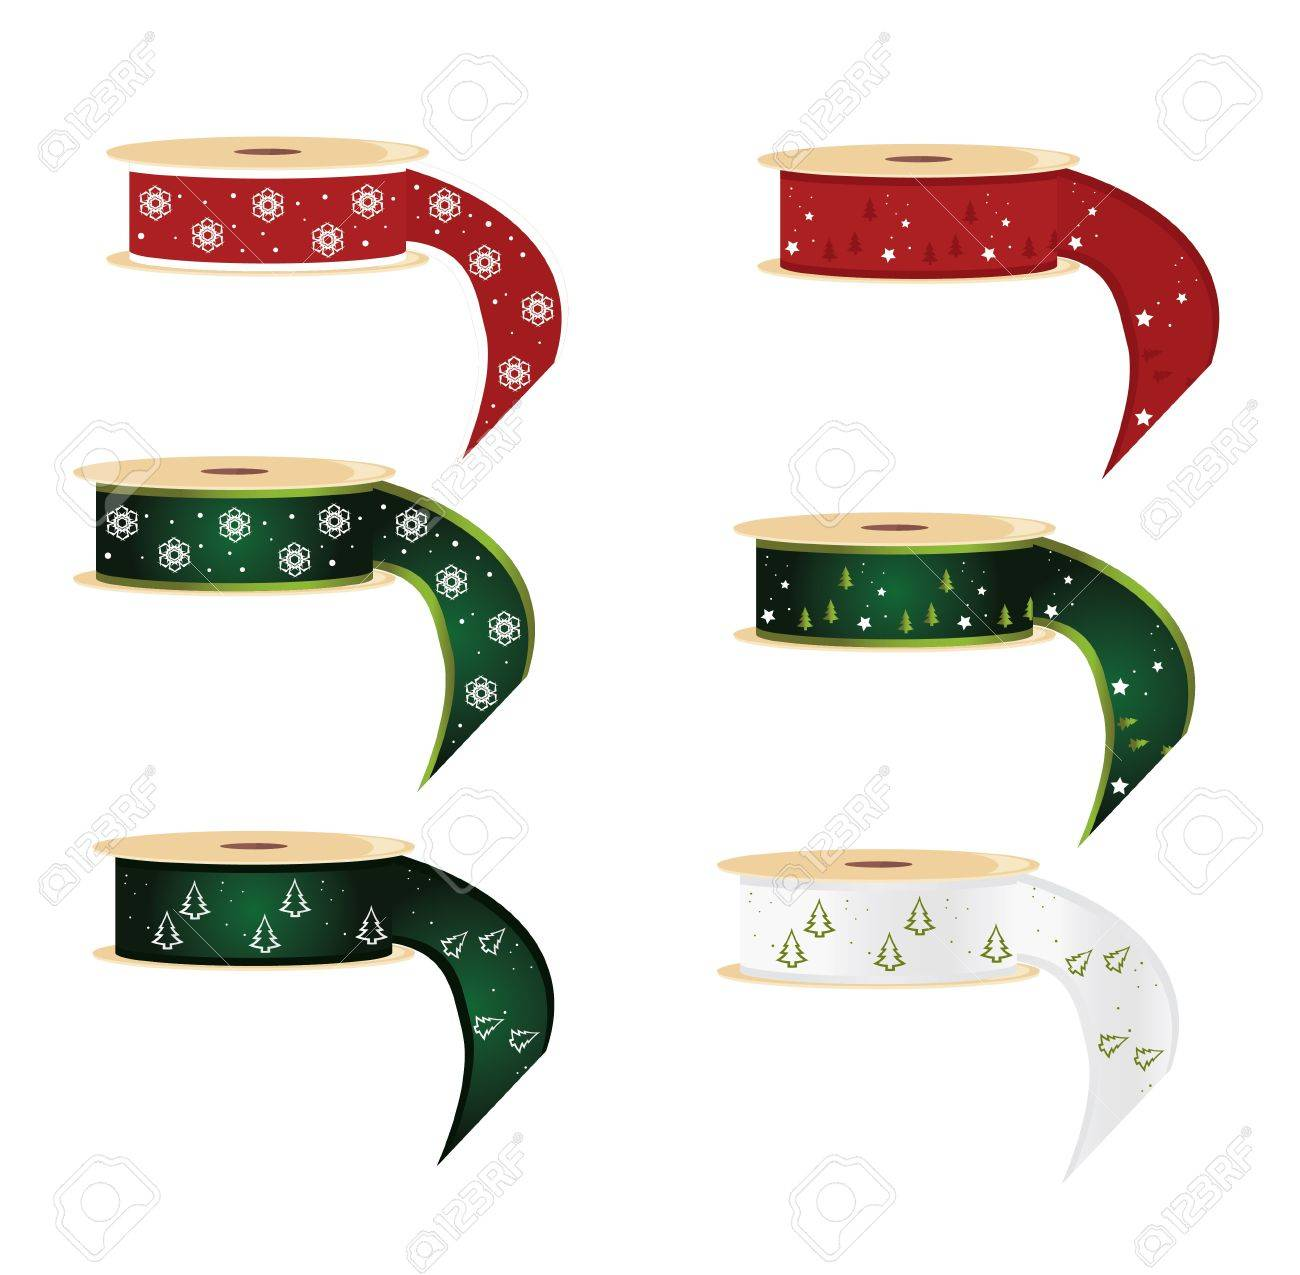 Six spools of ribbon with snowflake and pine tree designs Stock Vector - 7315103